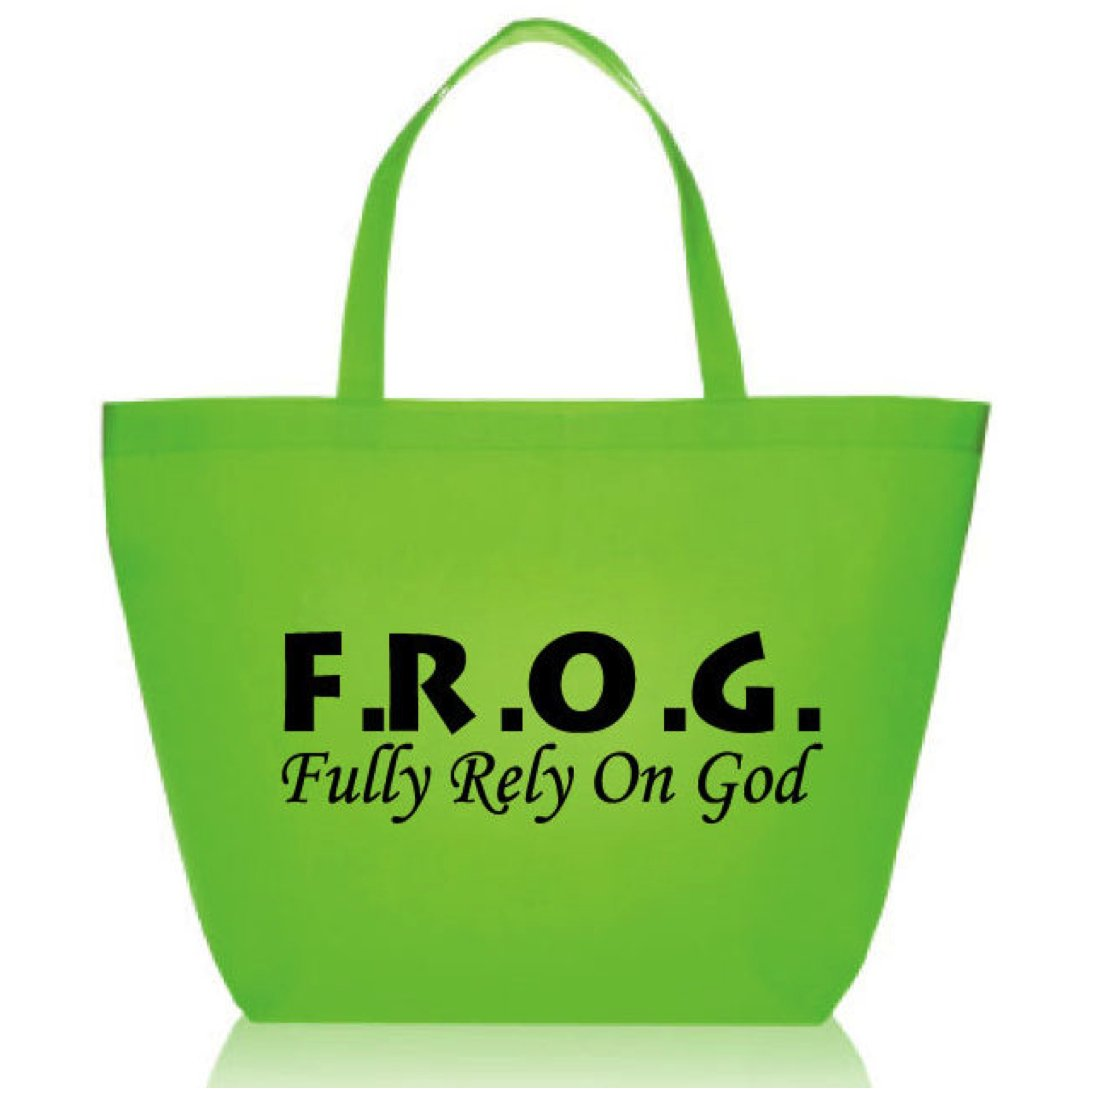 Green Wholesale Large Fully Rely On God Frog F.R.O.G. Nonwoven Tote Bags (100 Count) 20''